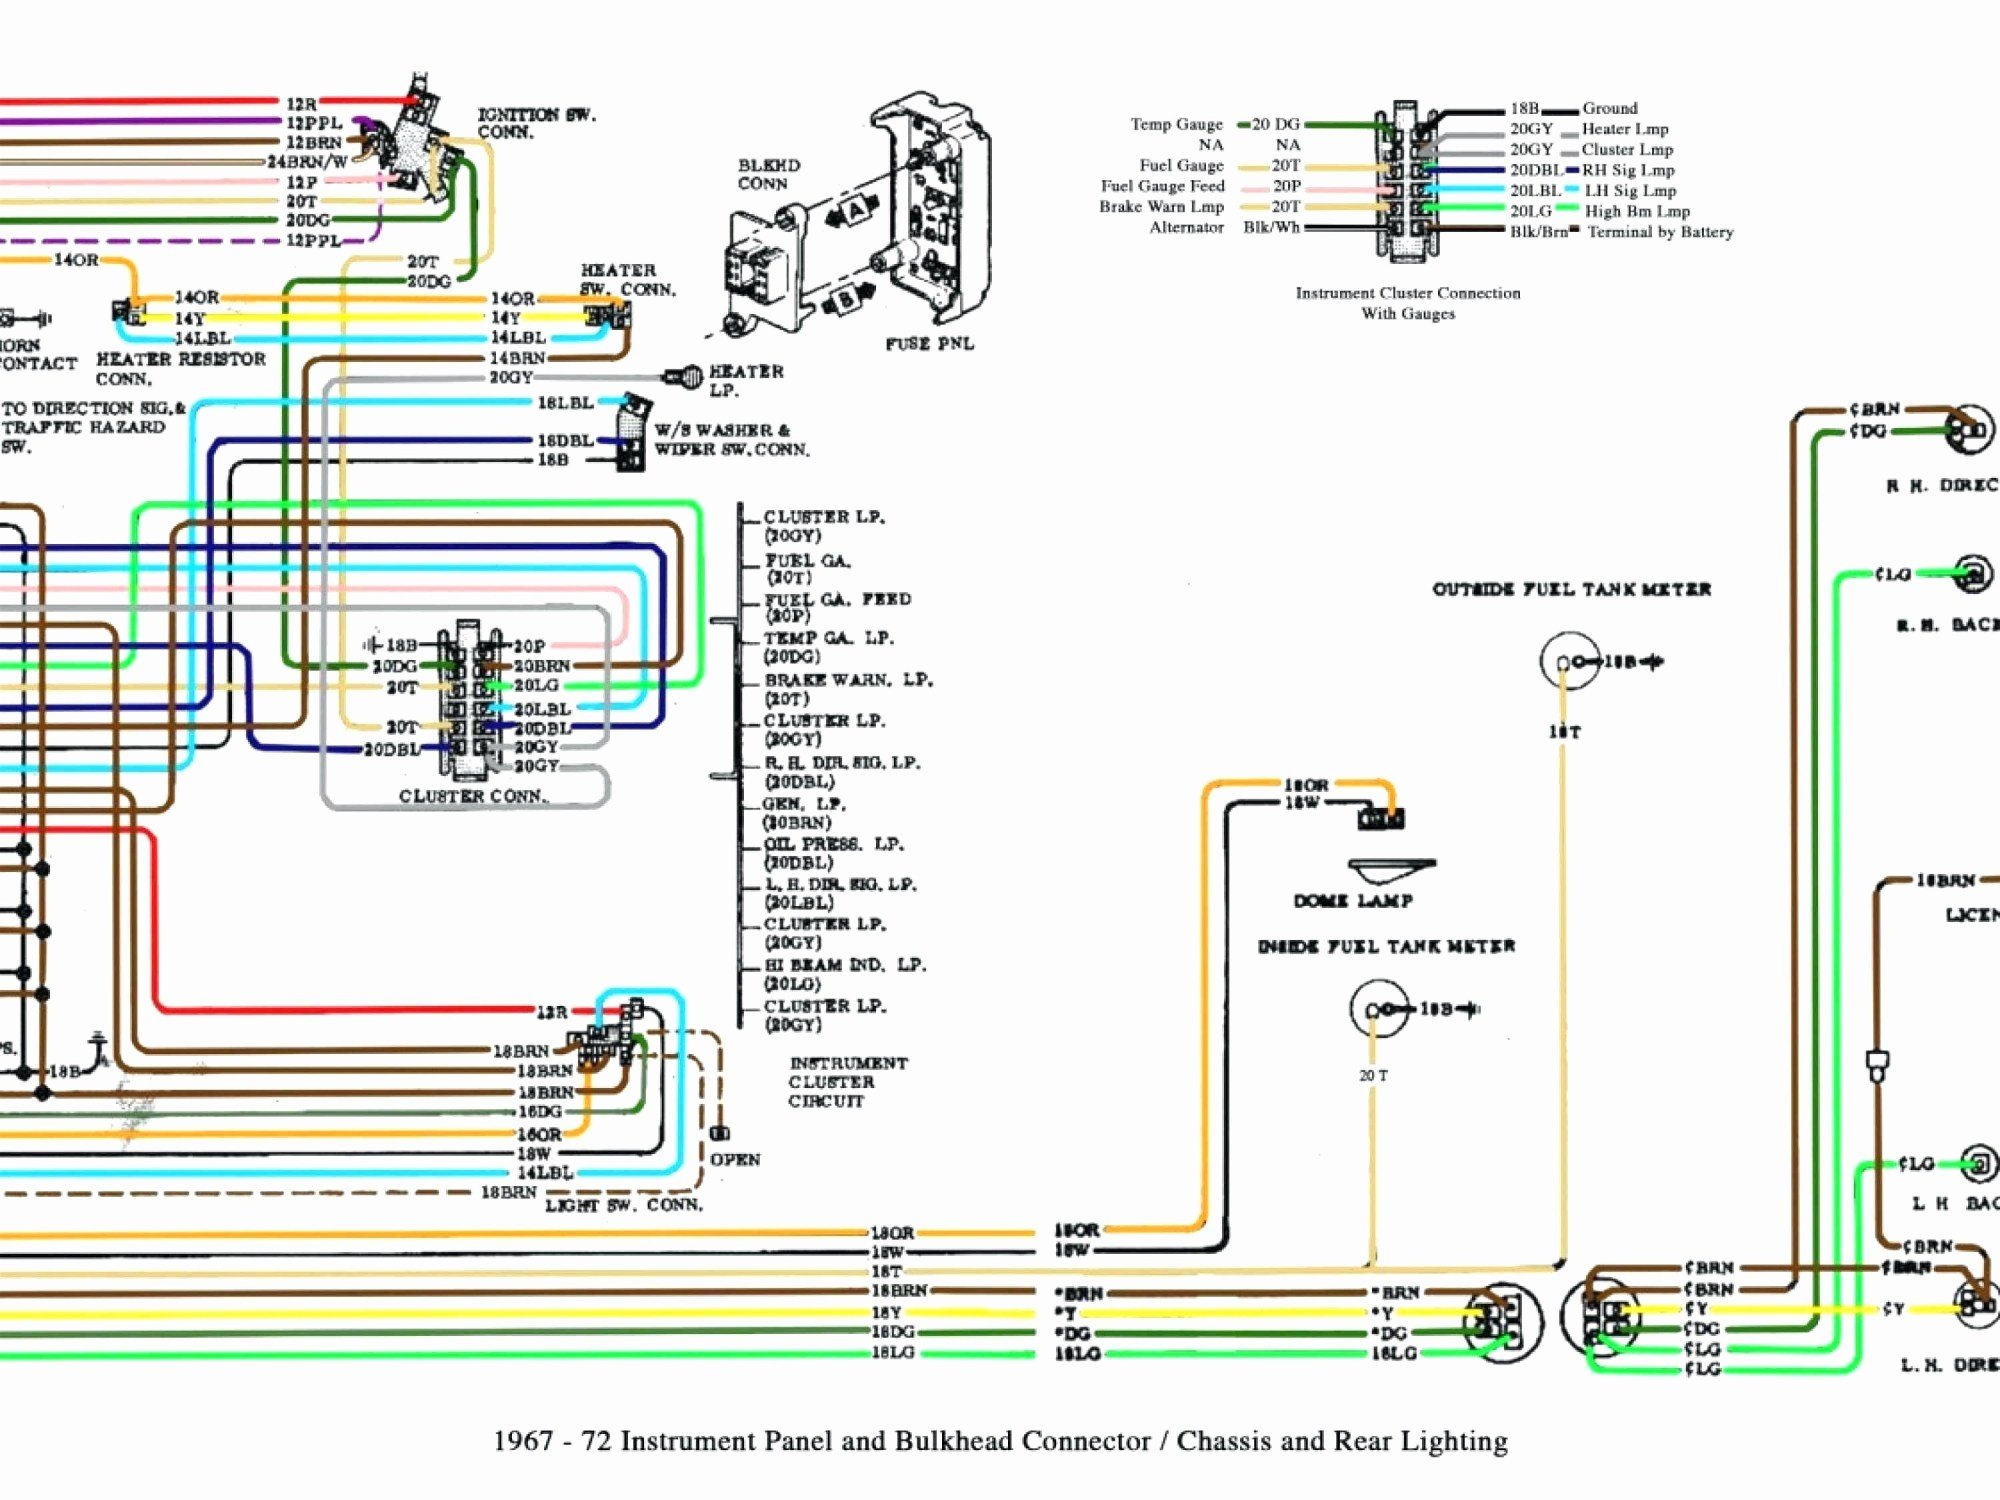 hight resolution of 1991 chevy radio wiring diagram wiring diagram page 1991 chevy silverado radio wiring harness 1991 chevy radio wiring